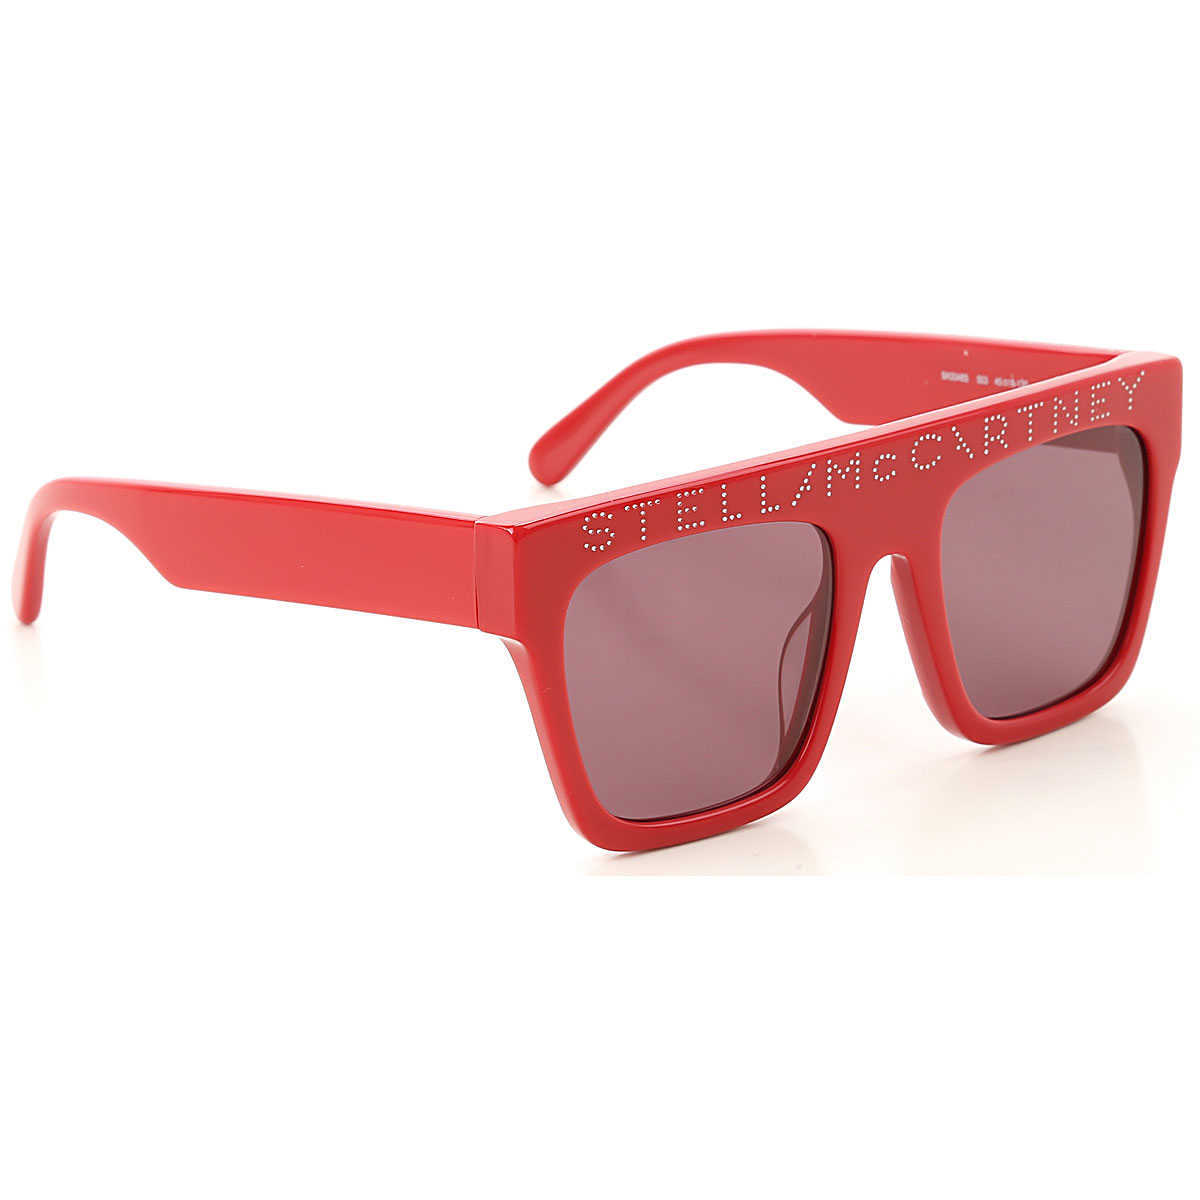 Stella McCartney Kids Sunglasses for Boys Red Canada - GOOFASH - Mens SUNGLASSES